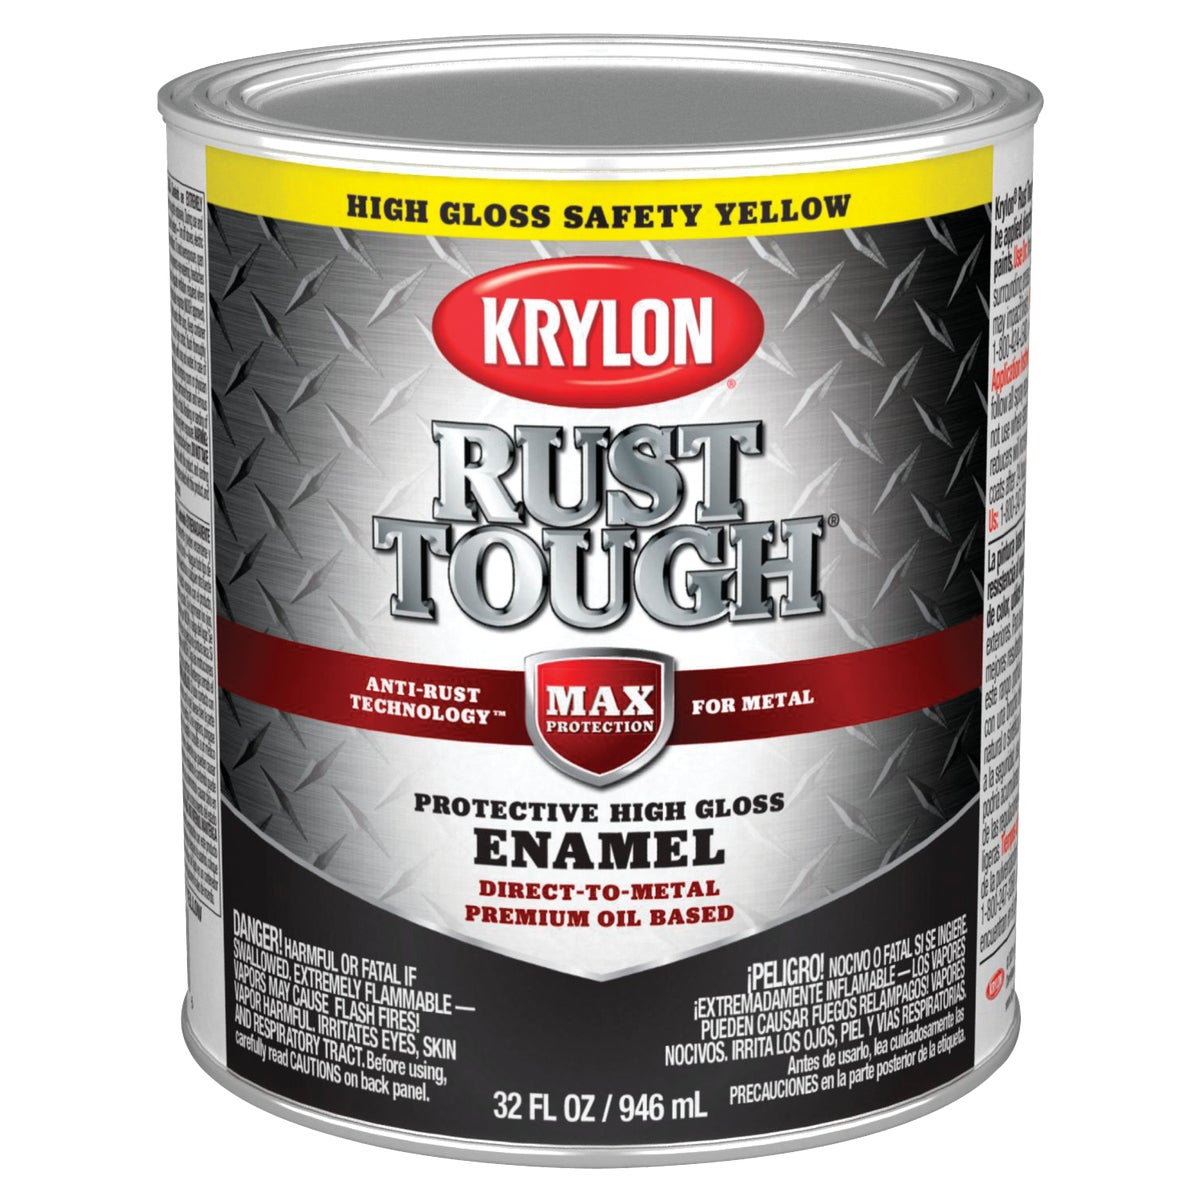 SAFE YELLOW RUST ENAMEL - 044.0021845.005 by Valspar Corp